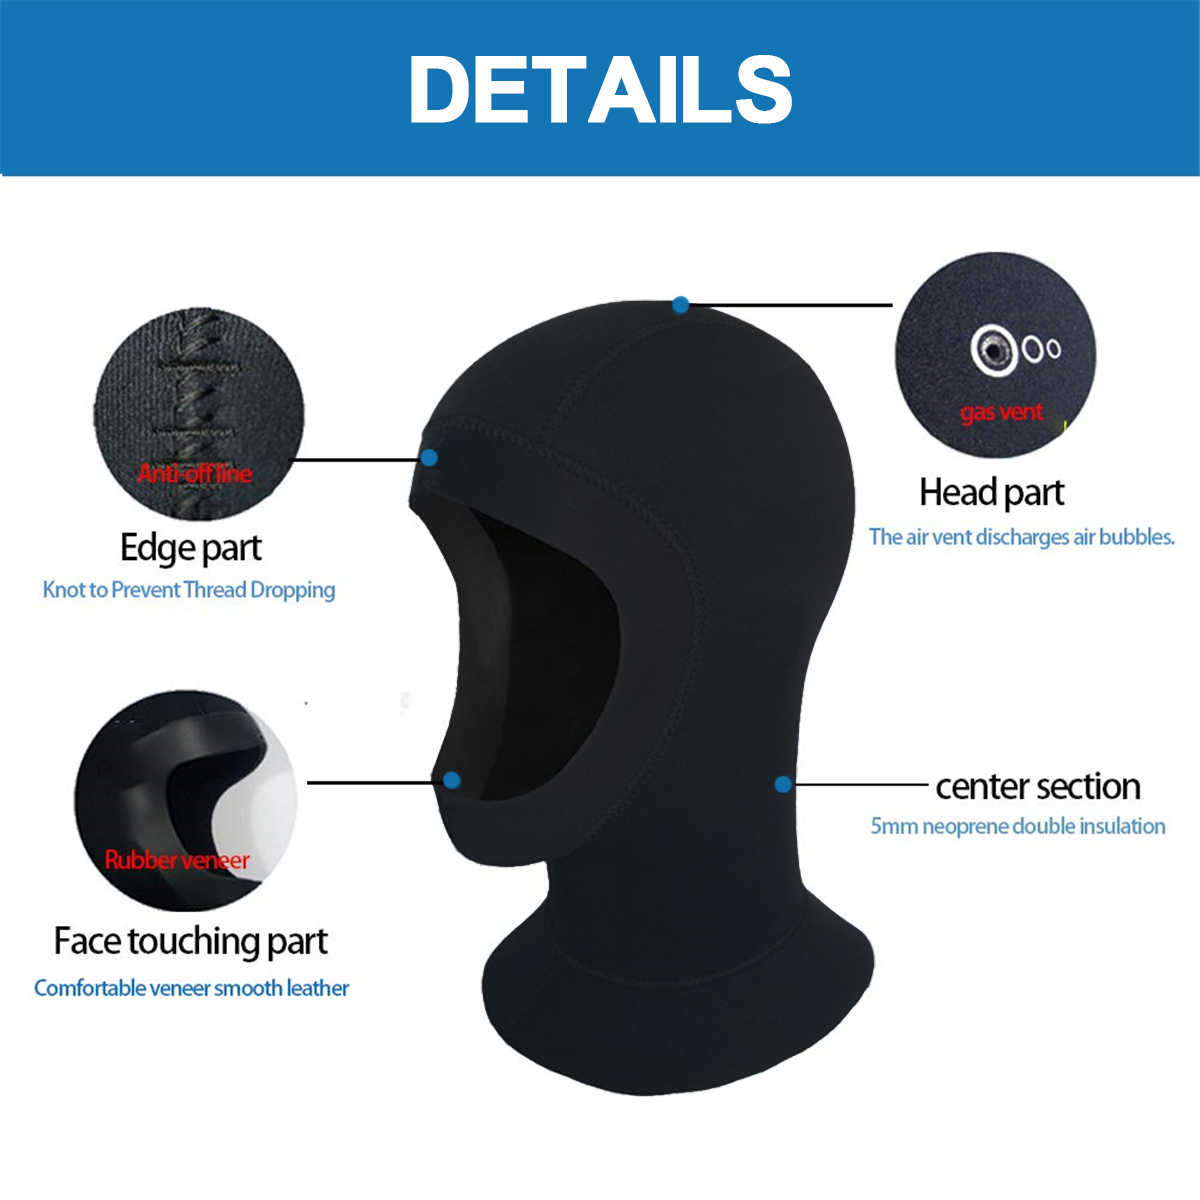 5mm Neoprene Scuba Diving Hood Mask Warm Water Sports Swimming Hat Wetsuit Cap Head Cover